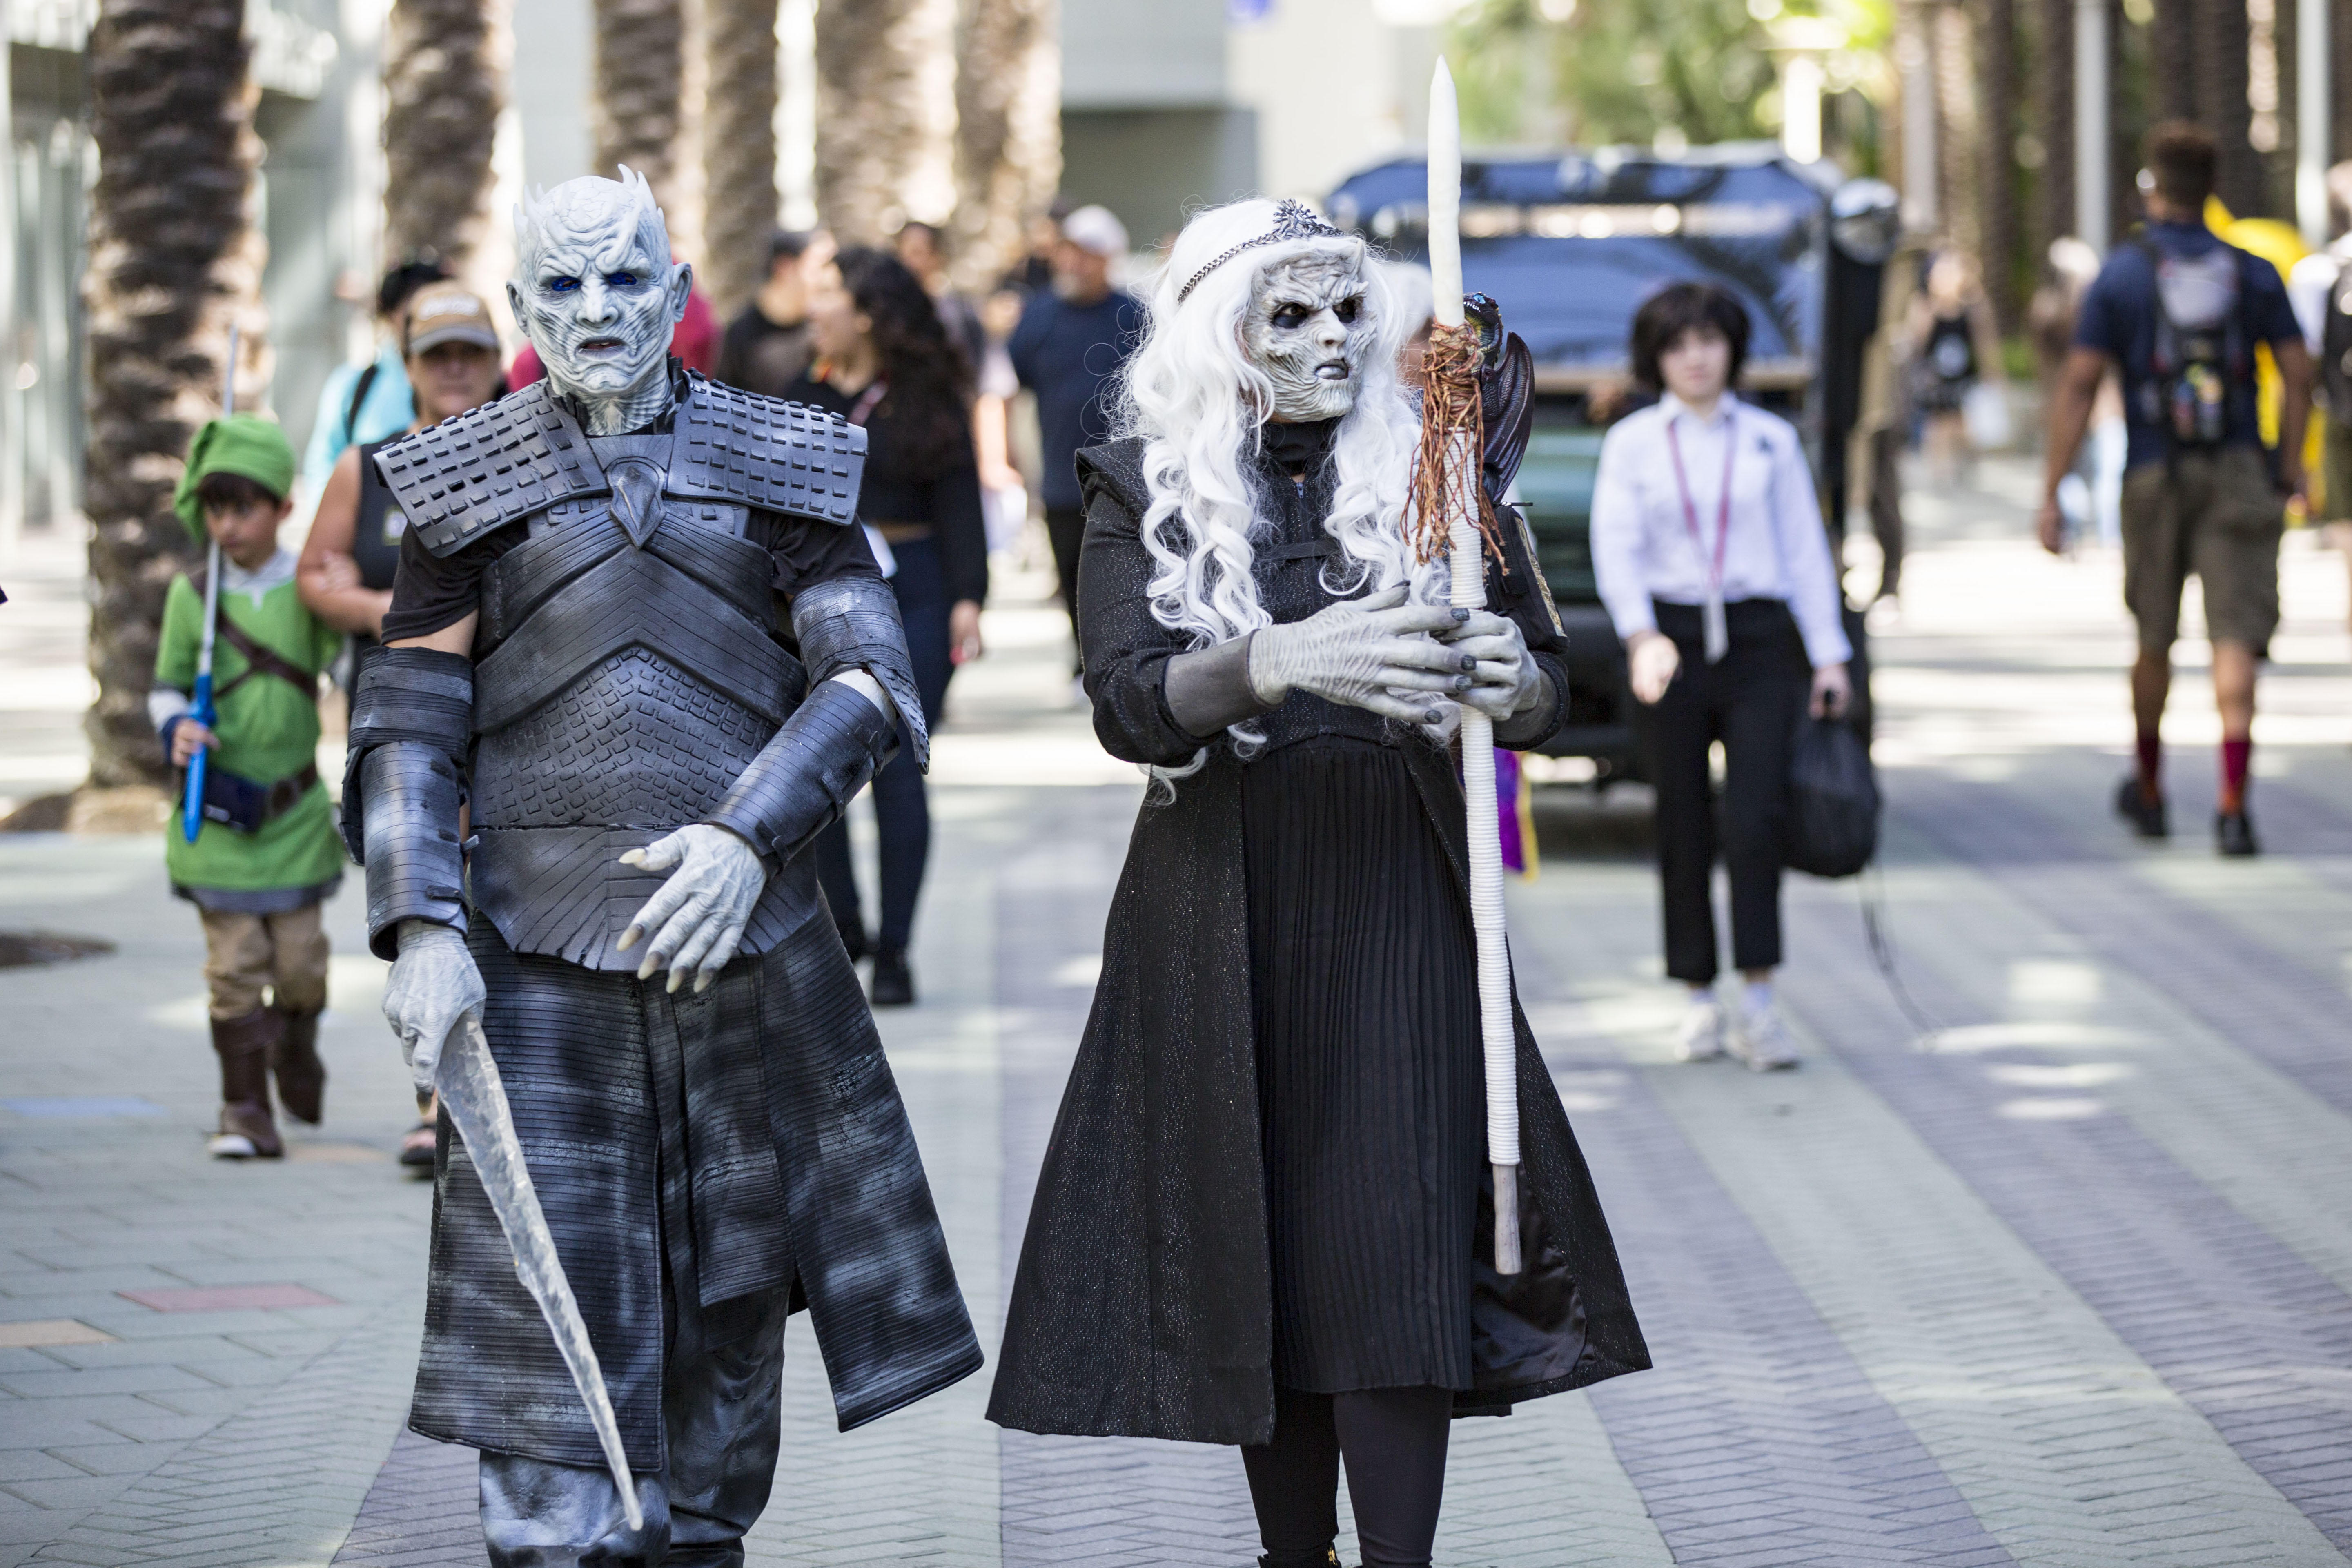 Of course there's GoT cosplay at WonderCon